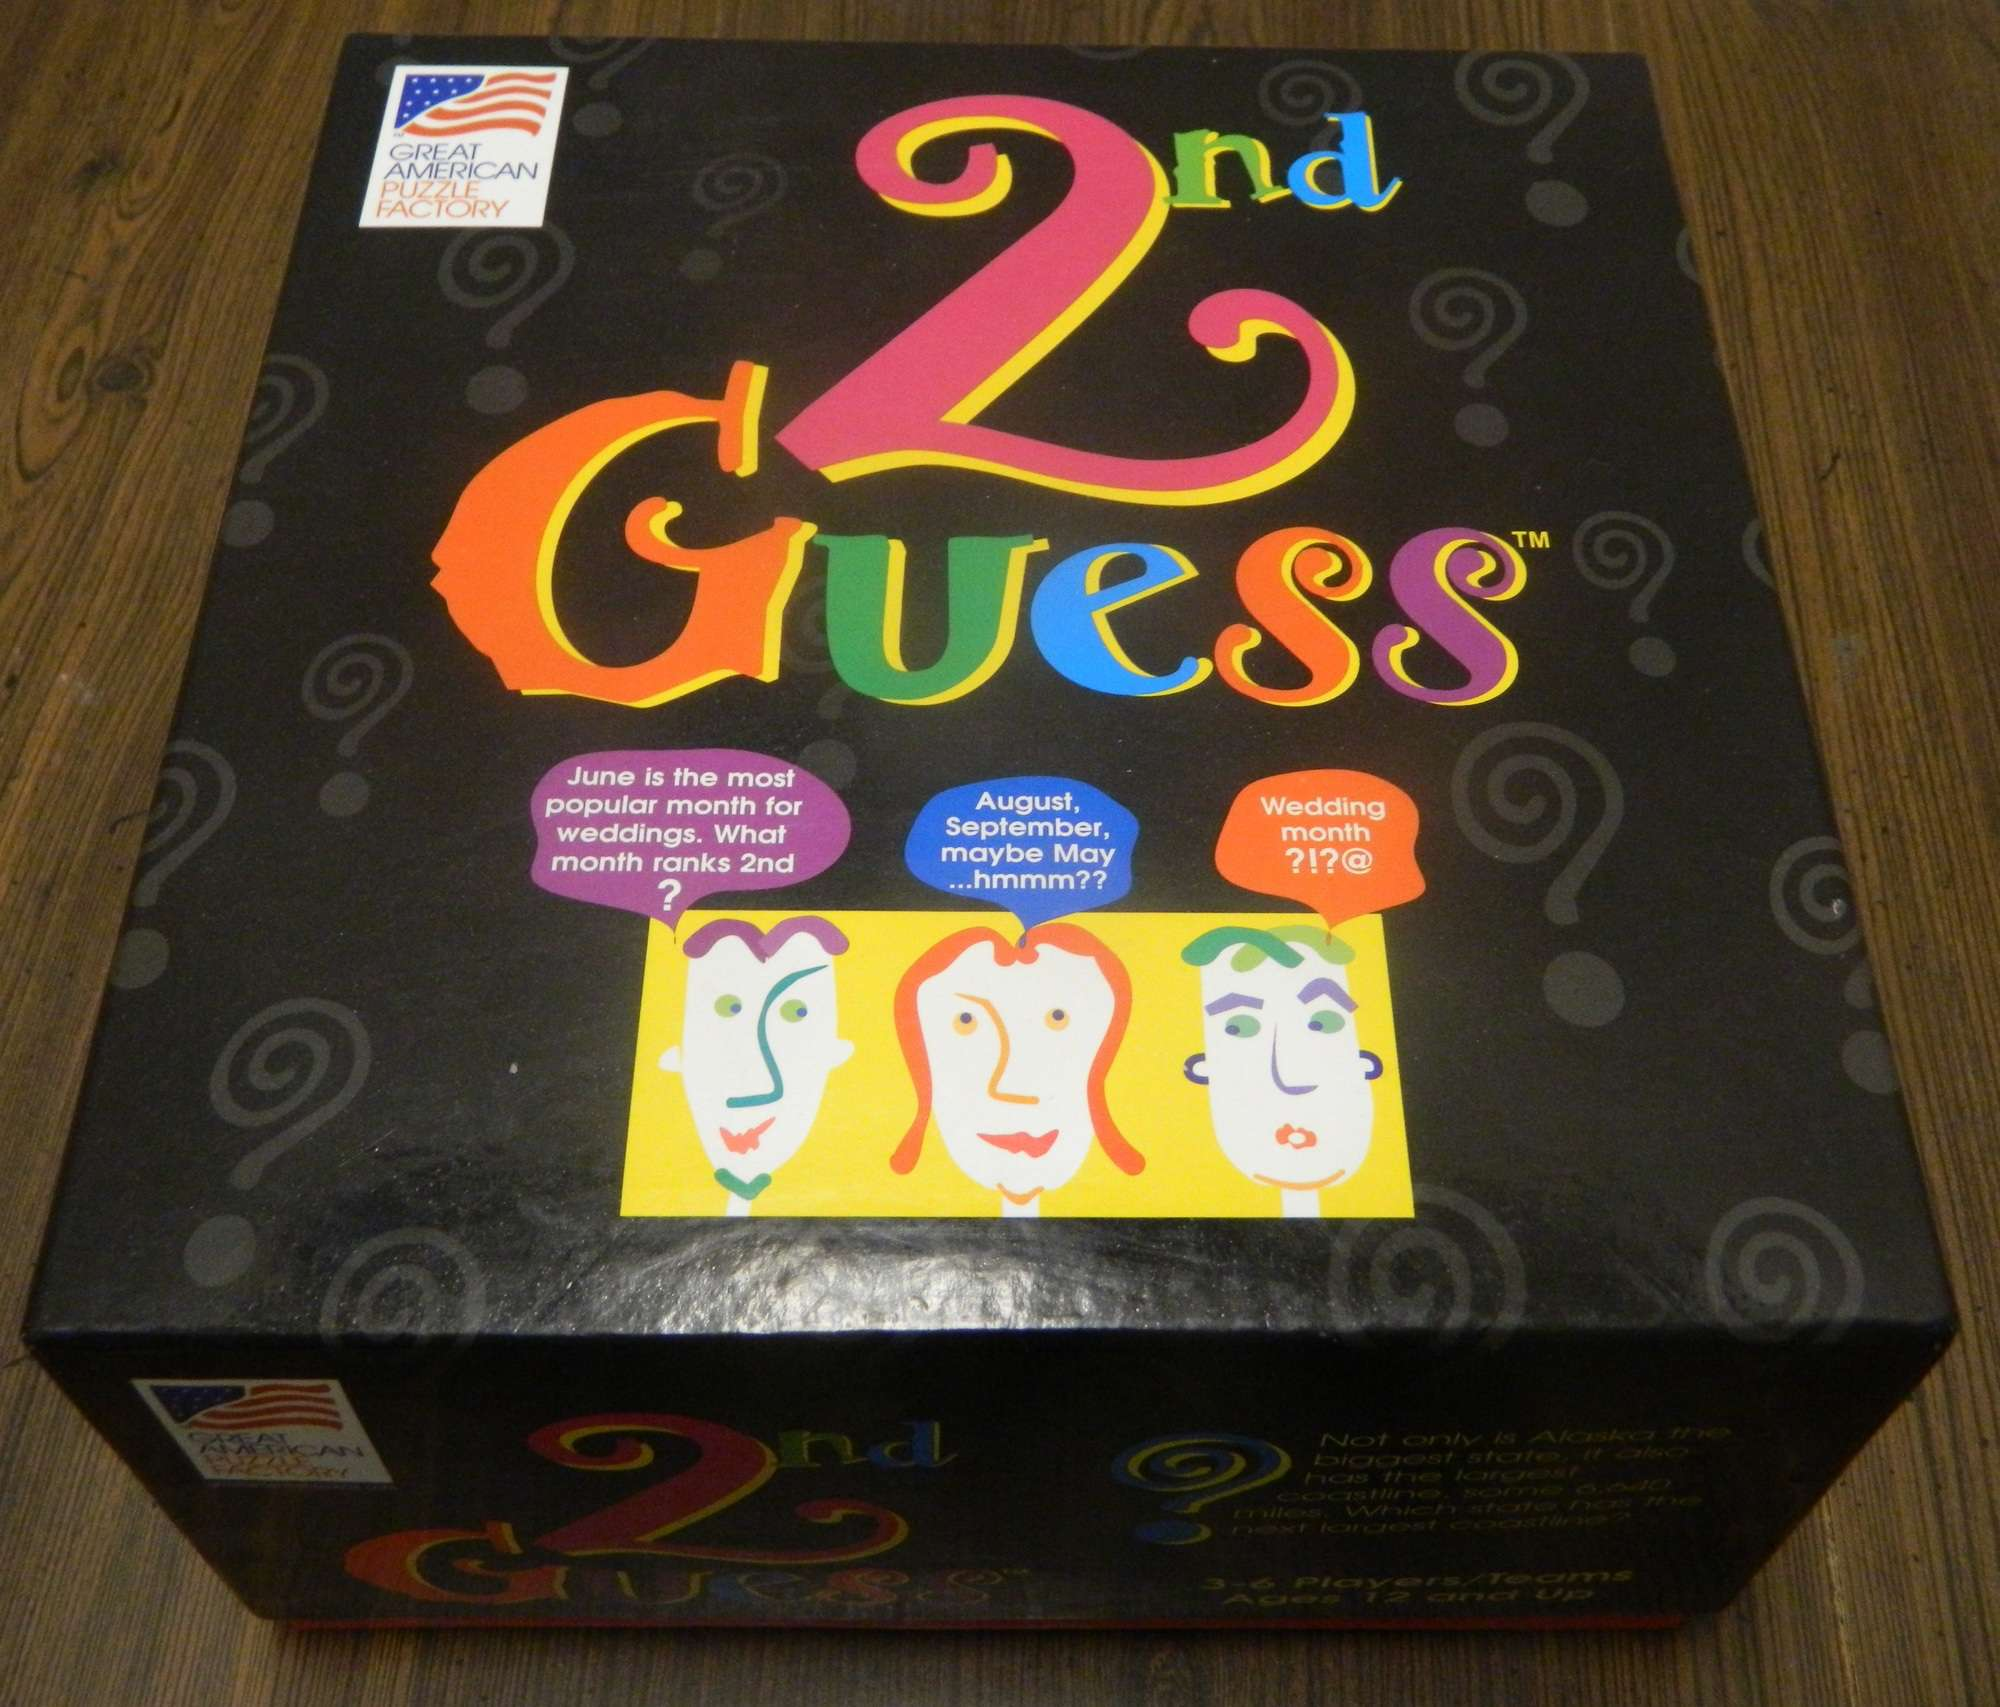 Box for 2nd Guess